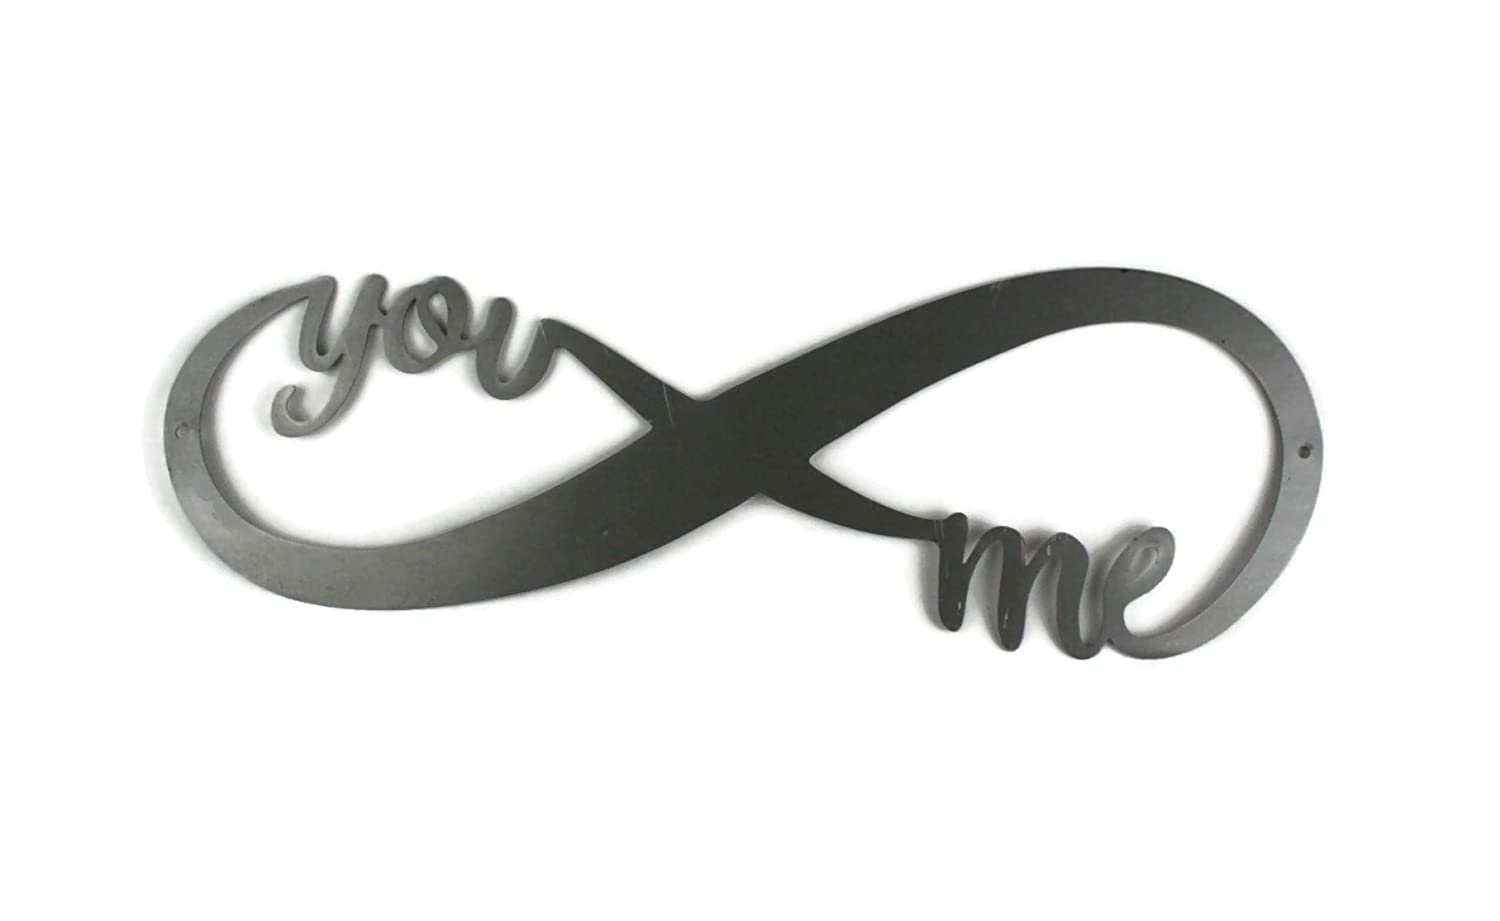 Infinity Symbol Raw Steel Unpainted Art 18 Inches